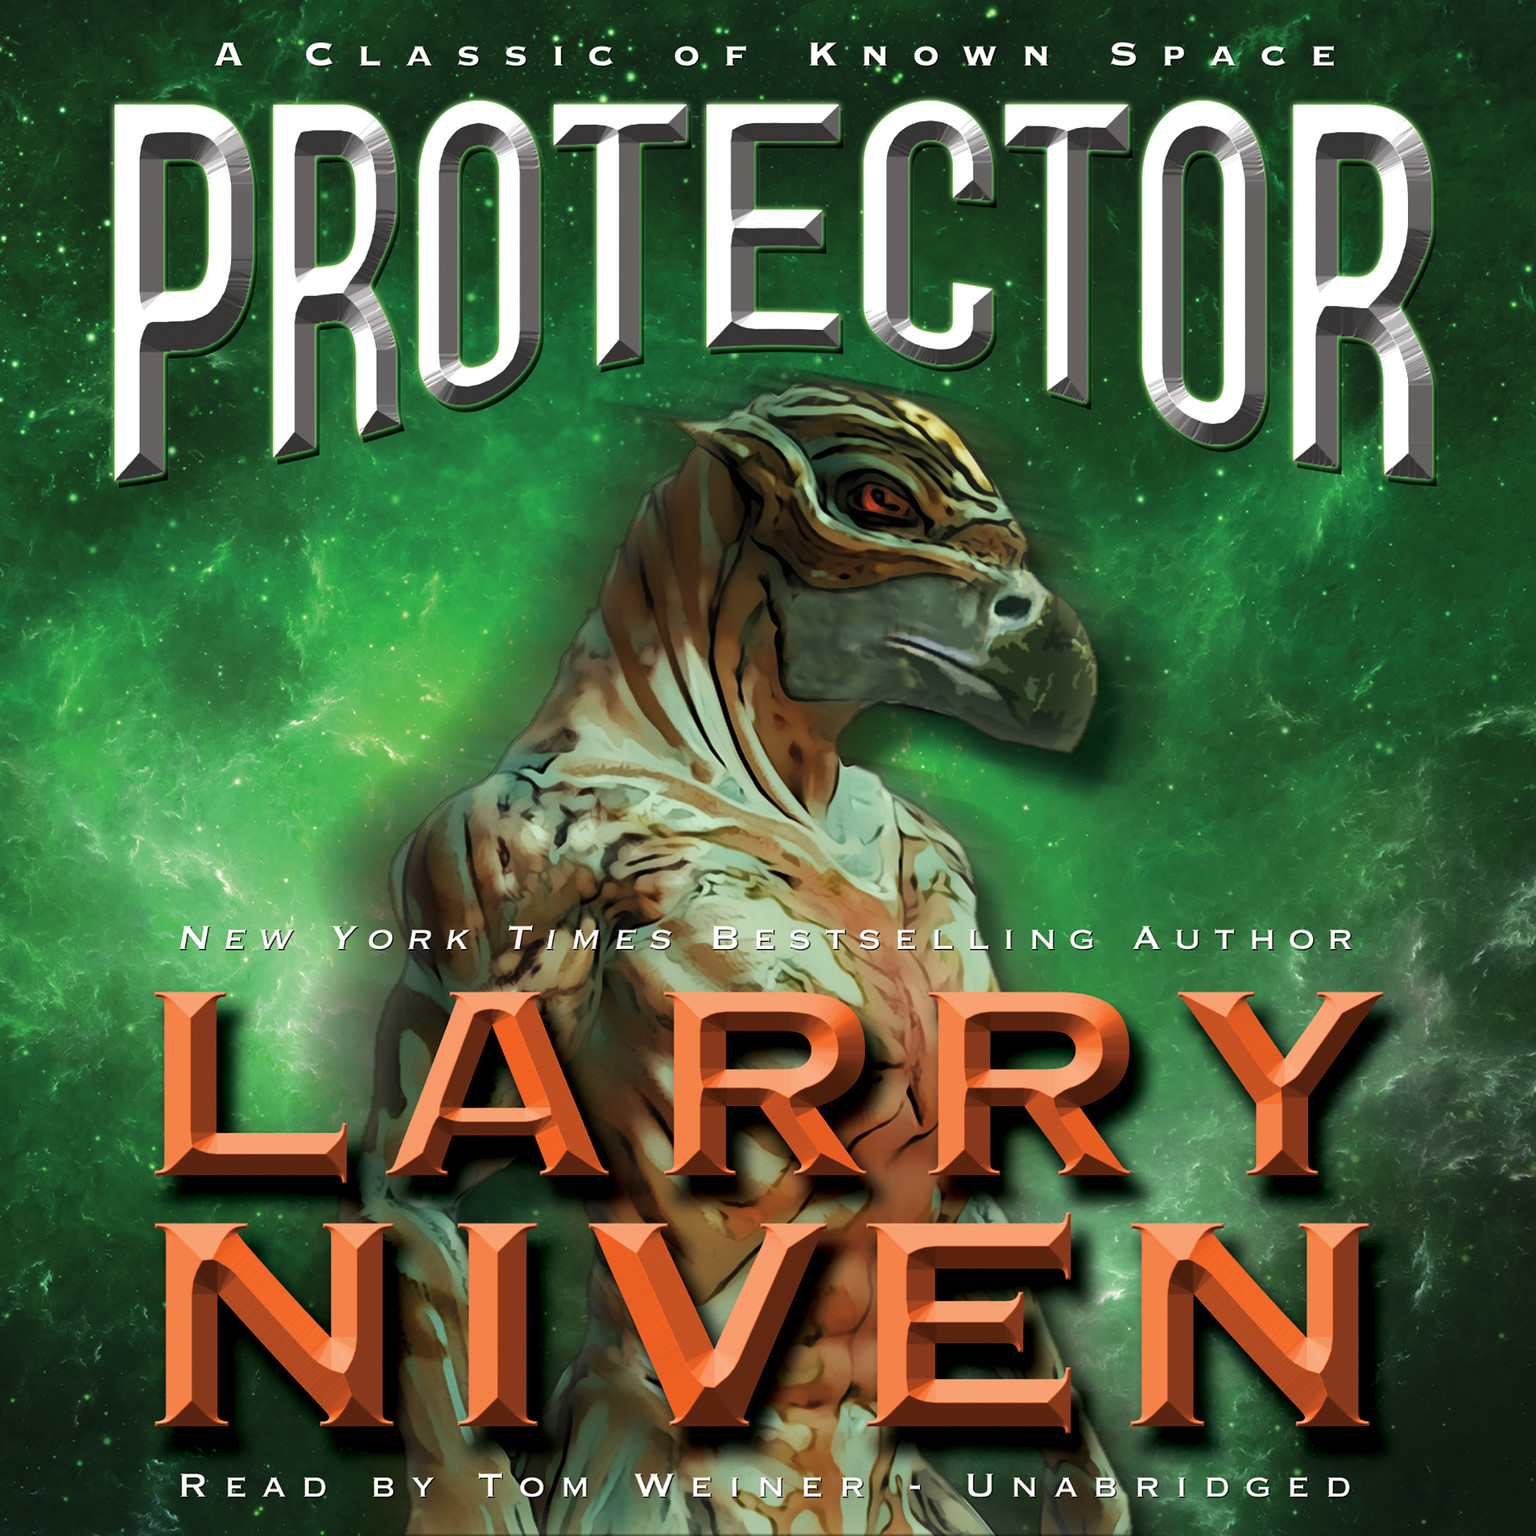 Download Protector Audiobook By Larry Niven Read By Tom